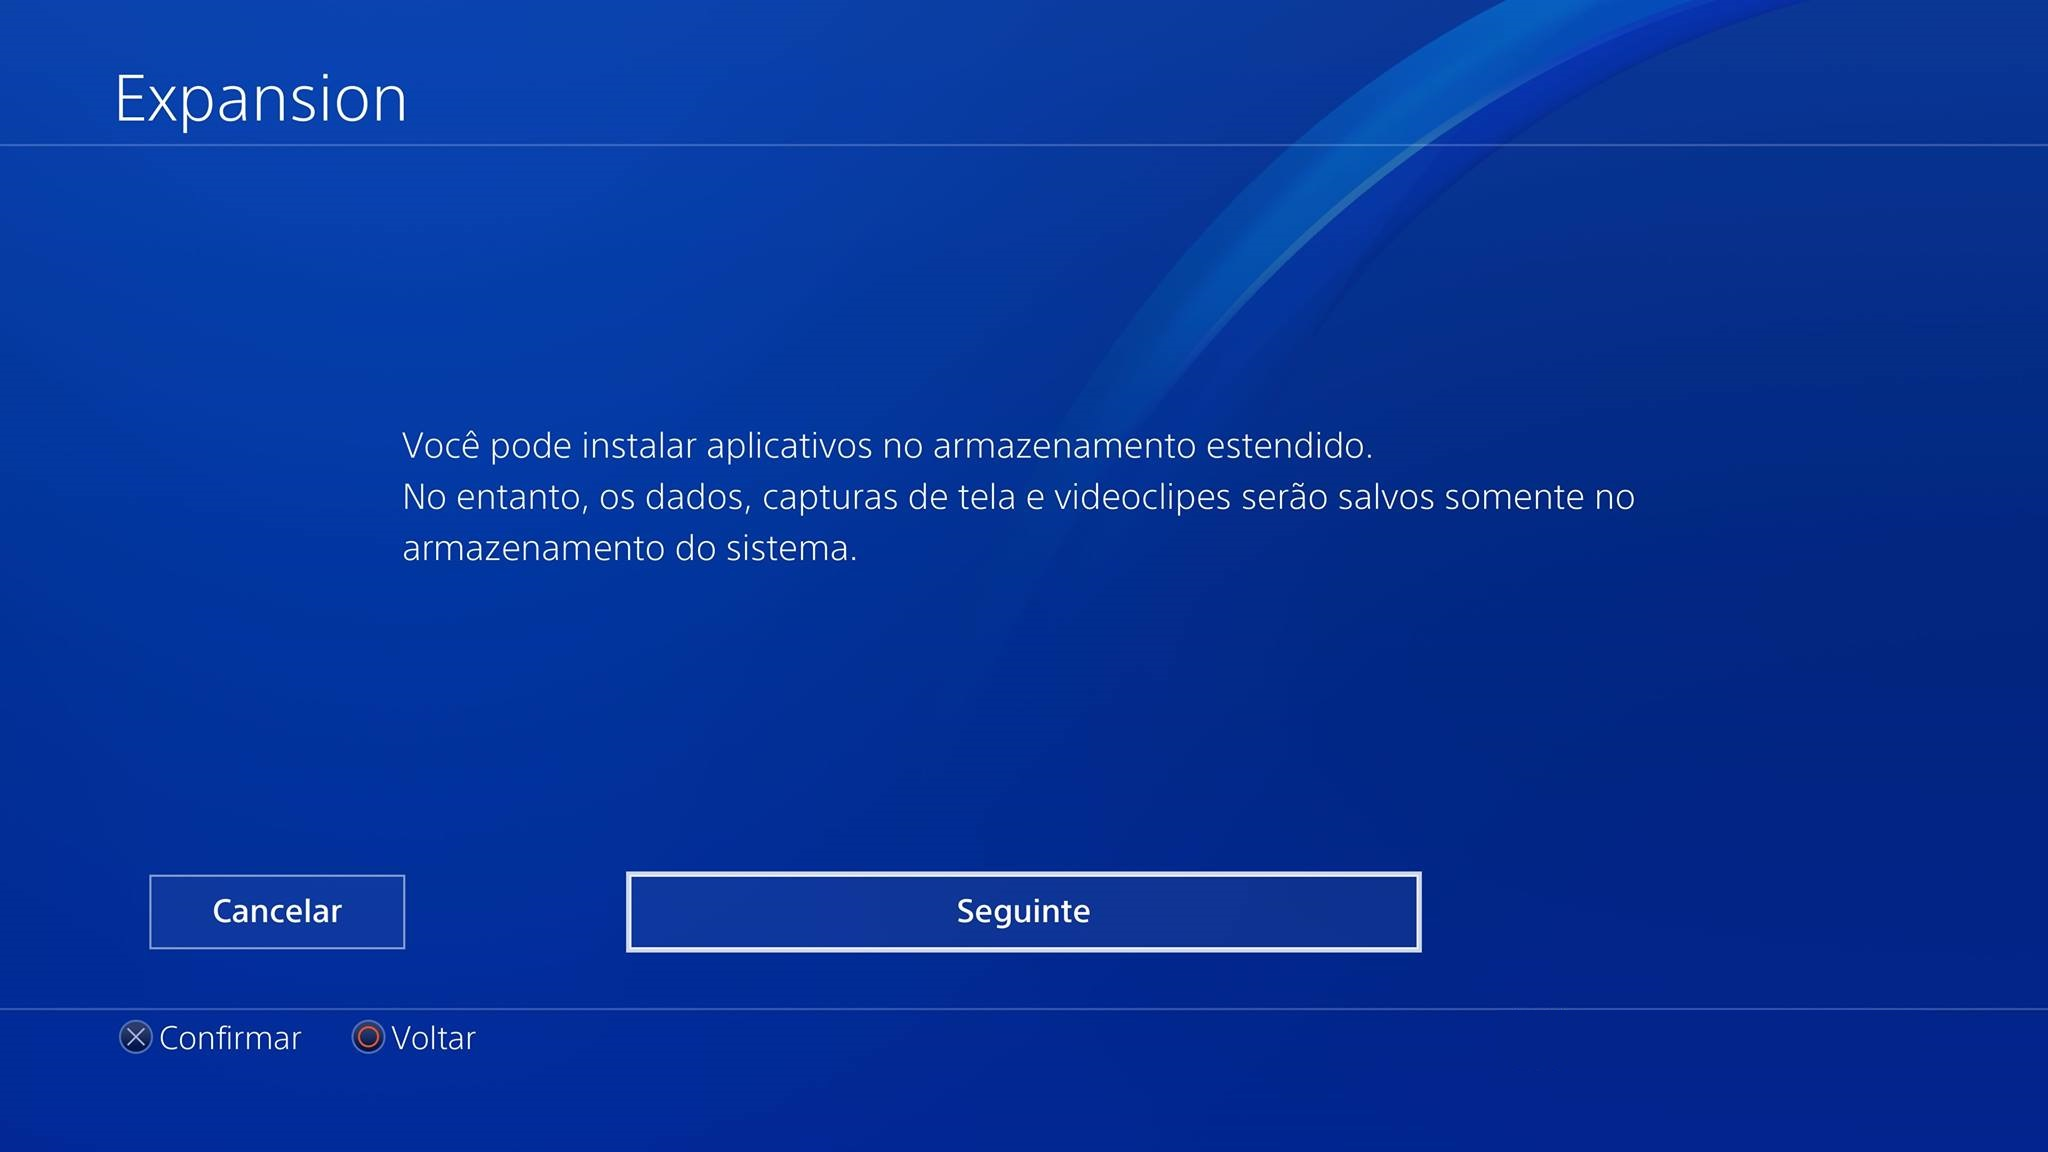 [Tutorial] Como configurar e usar HD externo no PlayStation 4 8